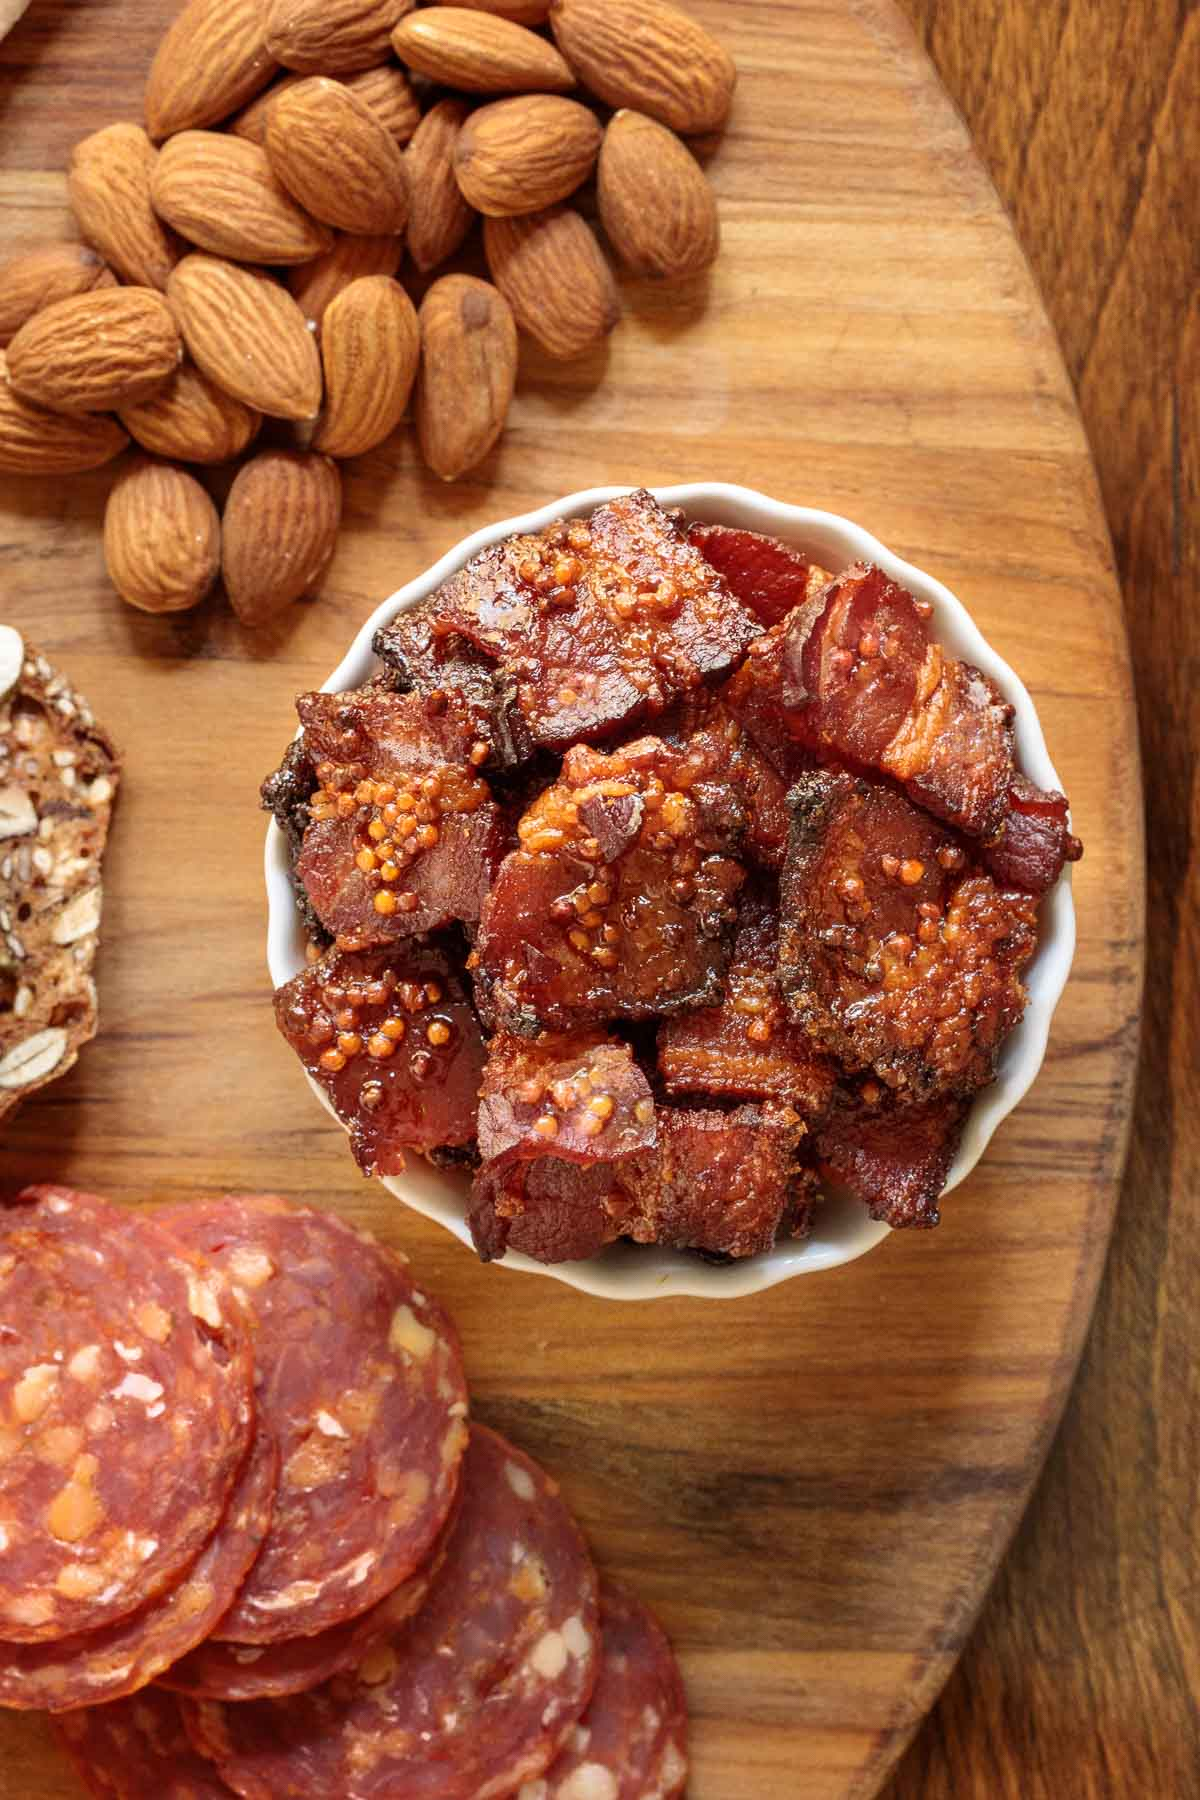 Overhead closeup photo of a bowl of Maple Mustard Candied Bacon on a wood appetizer board surrounded by nuts, crackers and sausage.